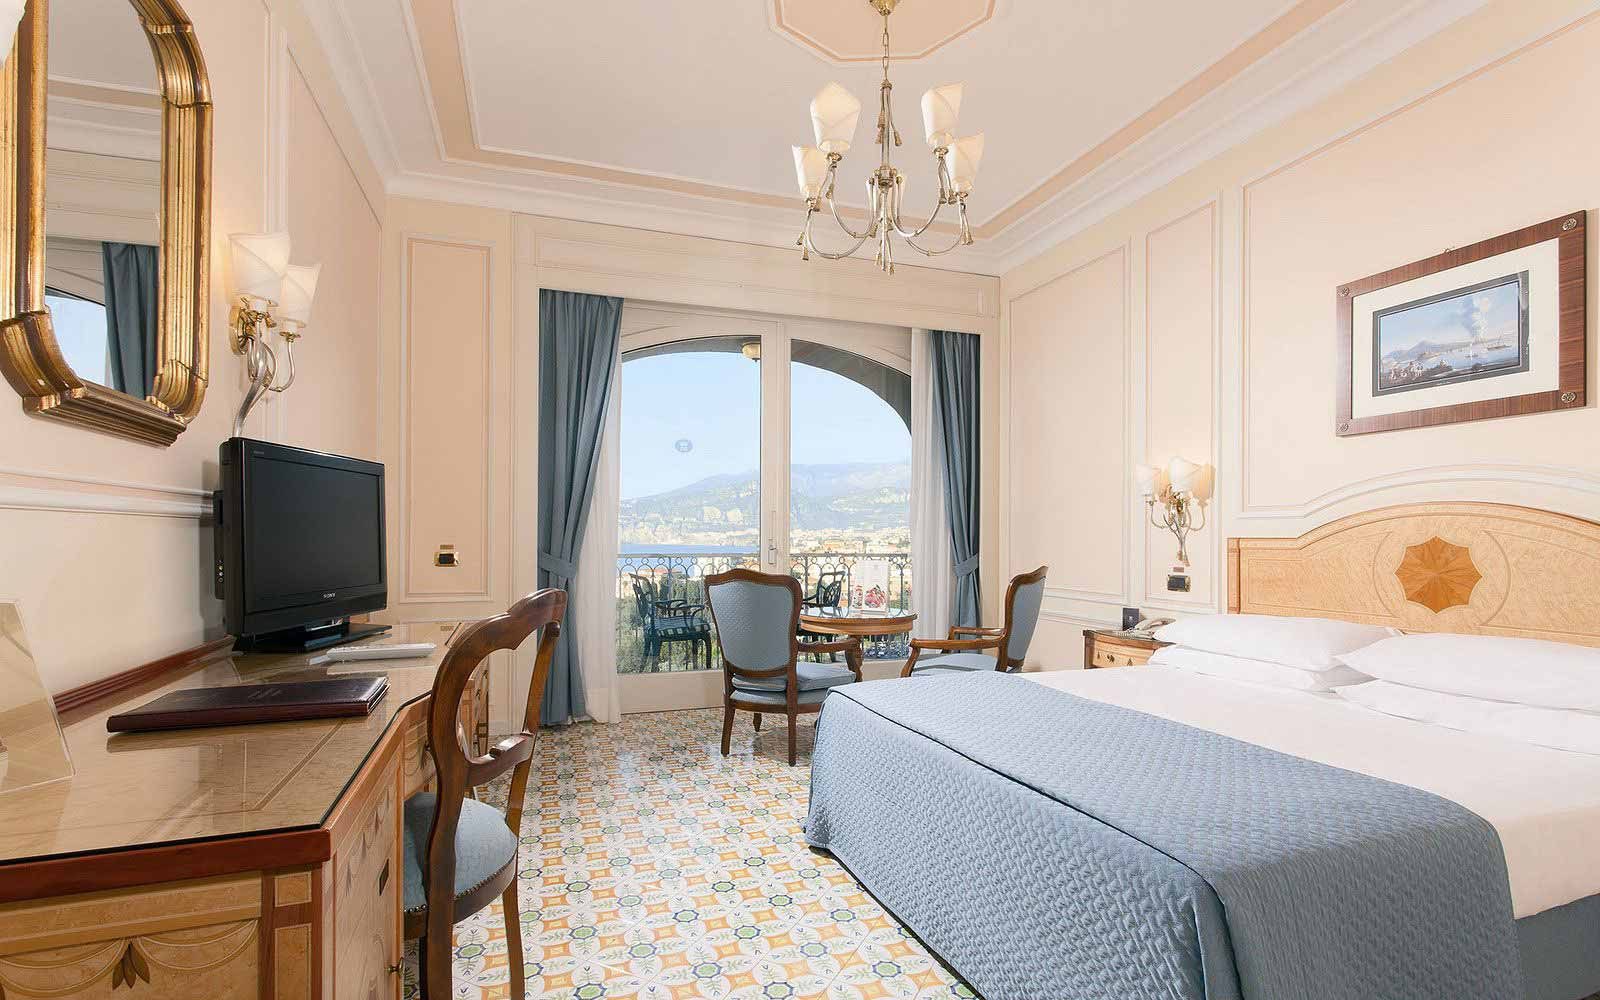 Superior Room with balcony and partial seaview at the Grand Hotel Capodimonte